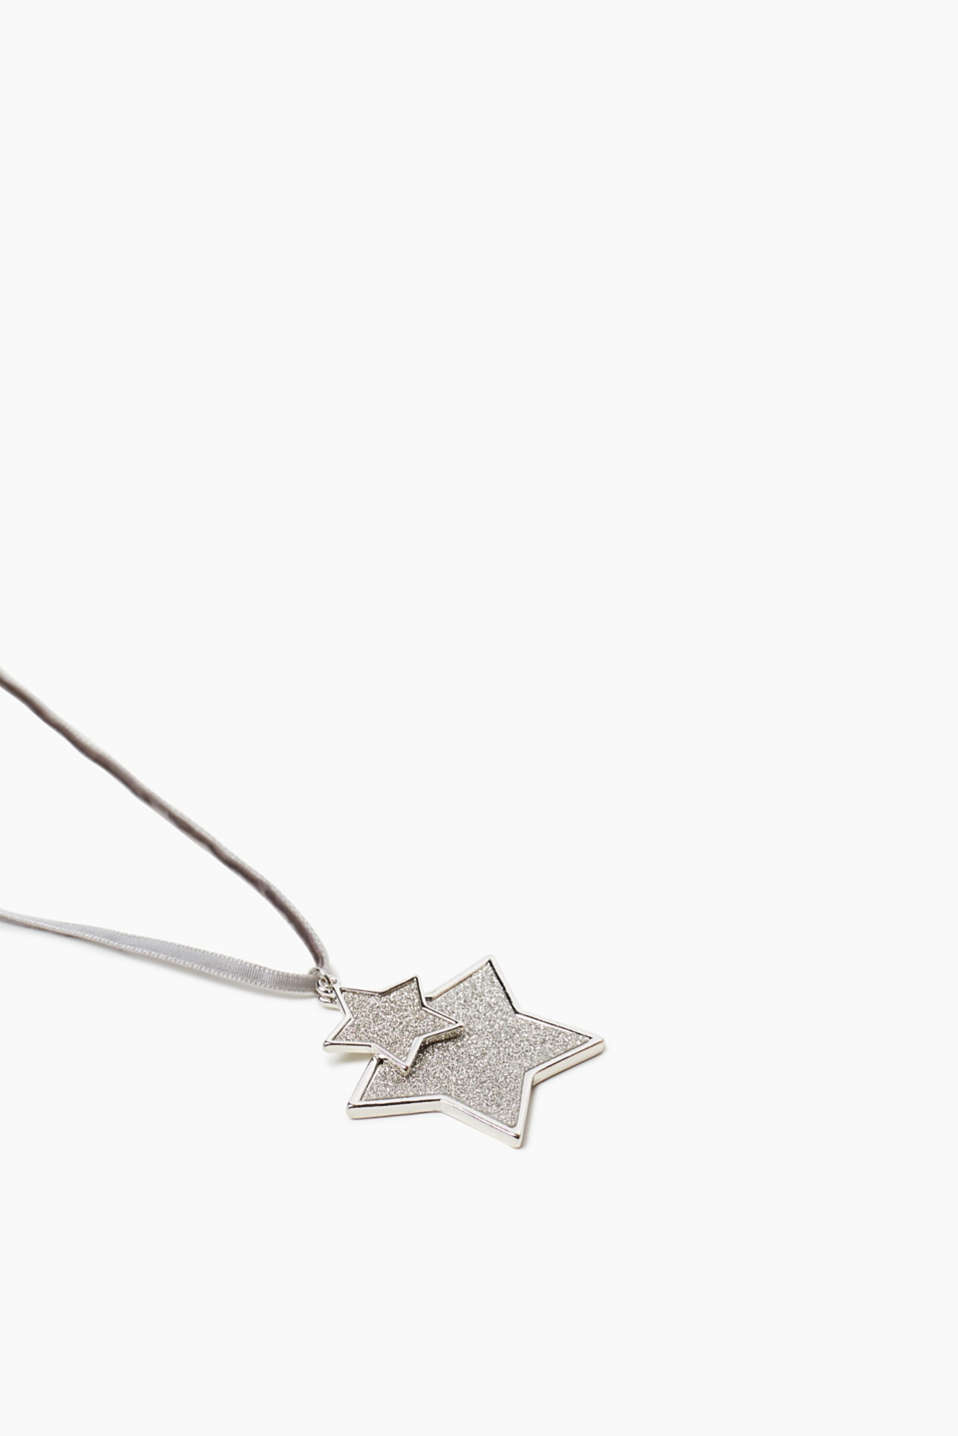 Velvet necklace with metal stars